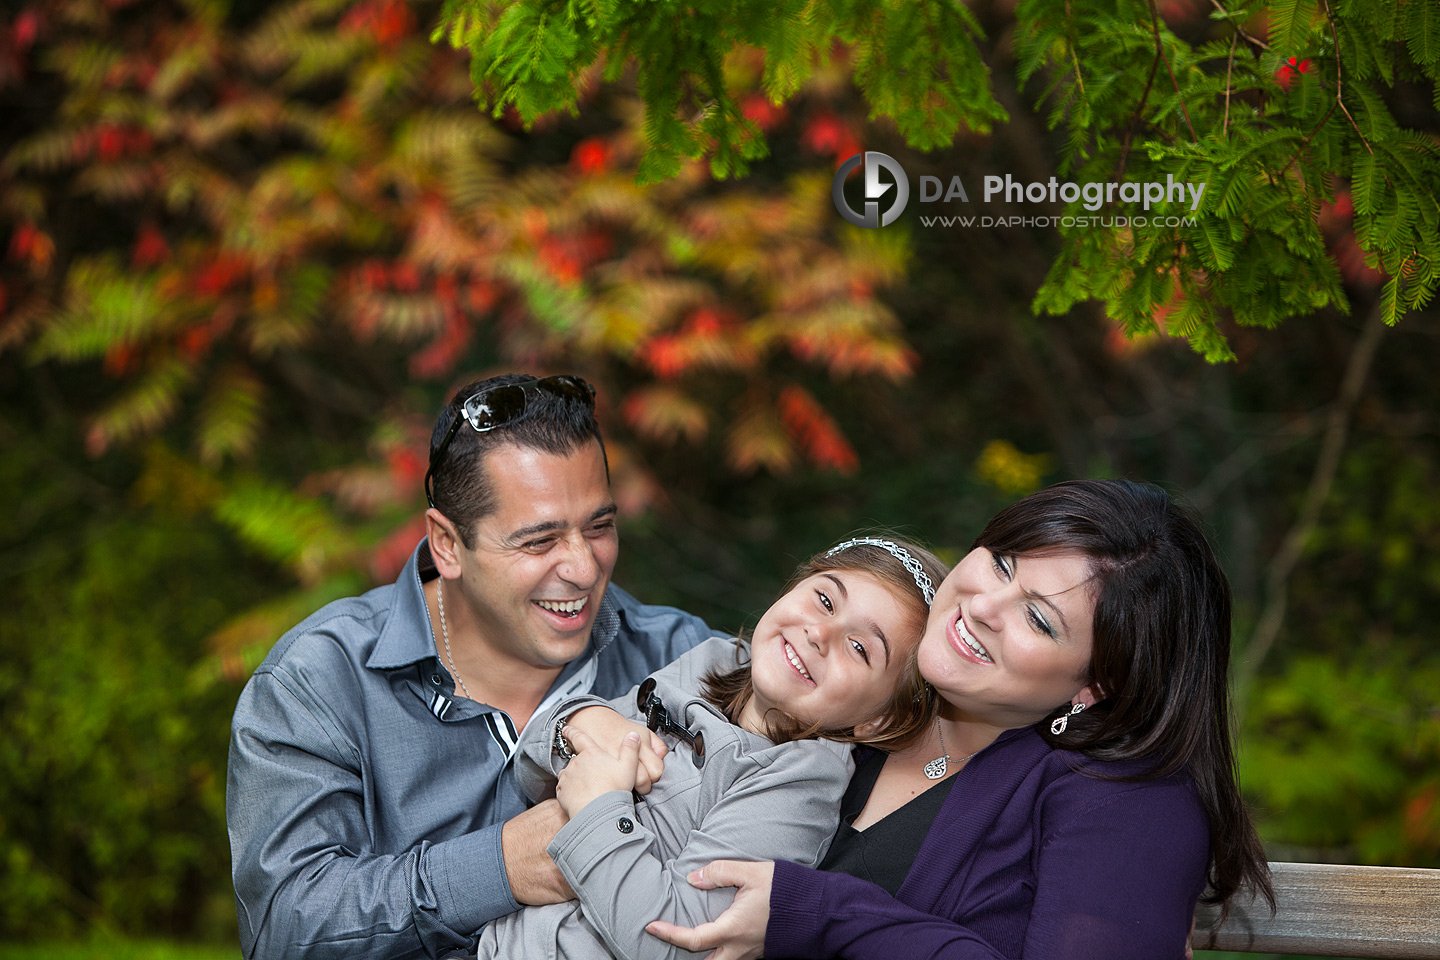 No pose could ever compare - DA Photography - Family Photography